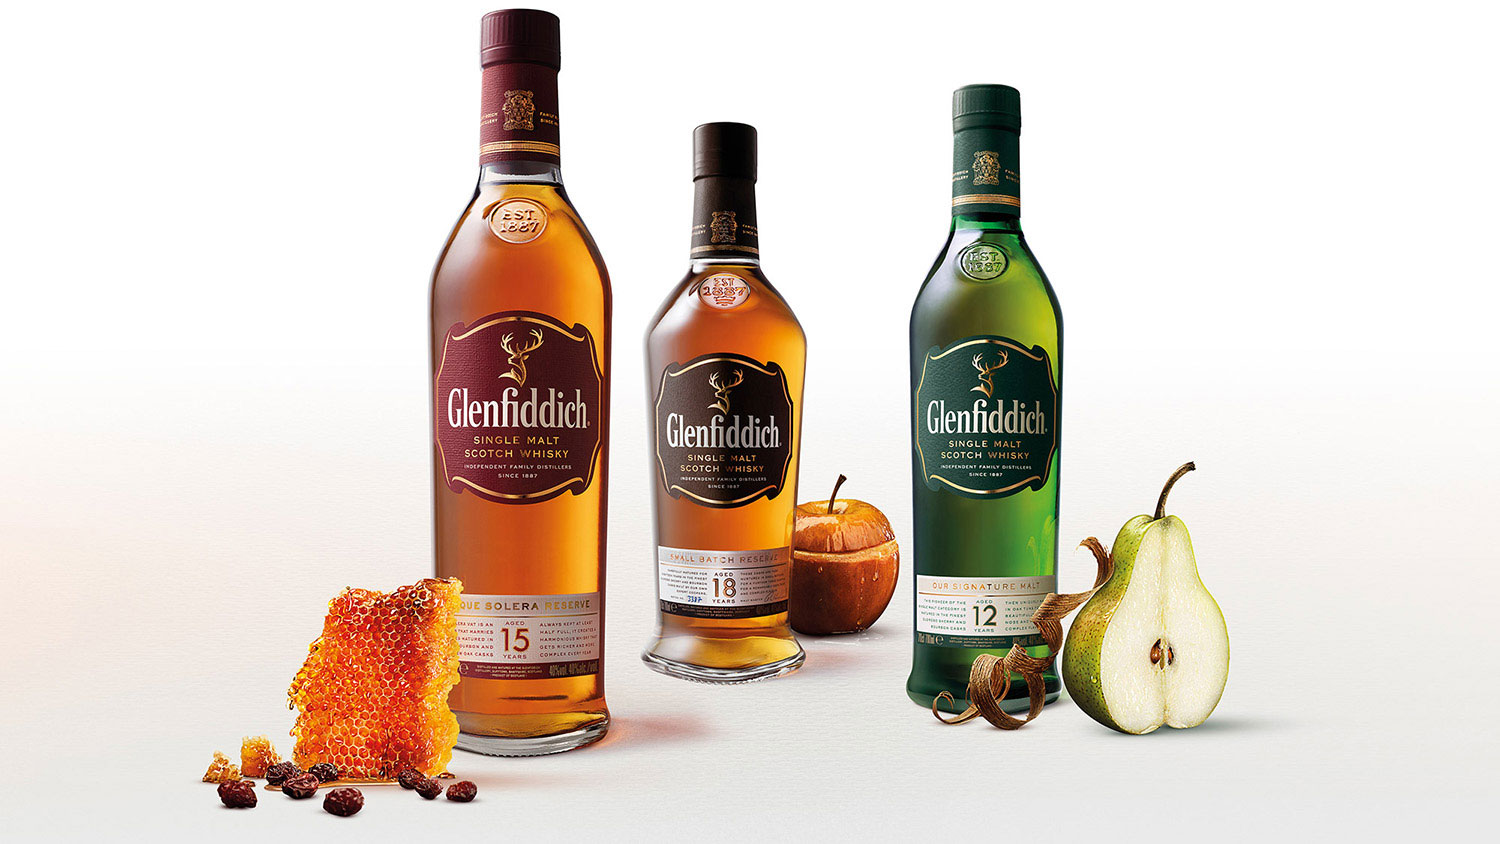 glenfiddich-awardwinning-single-malt-whiskiesopt